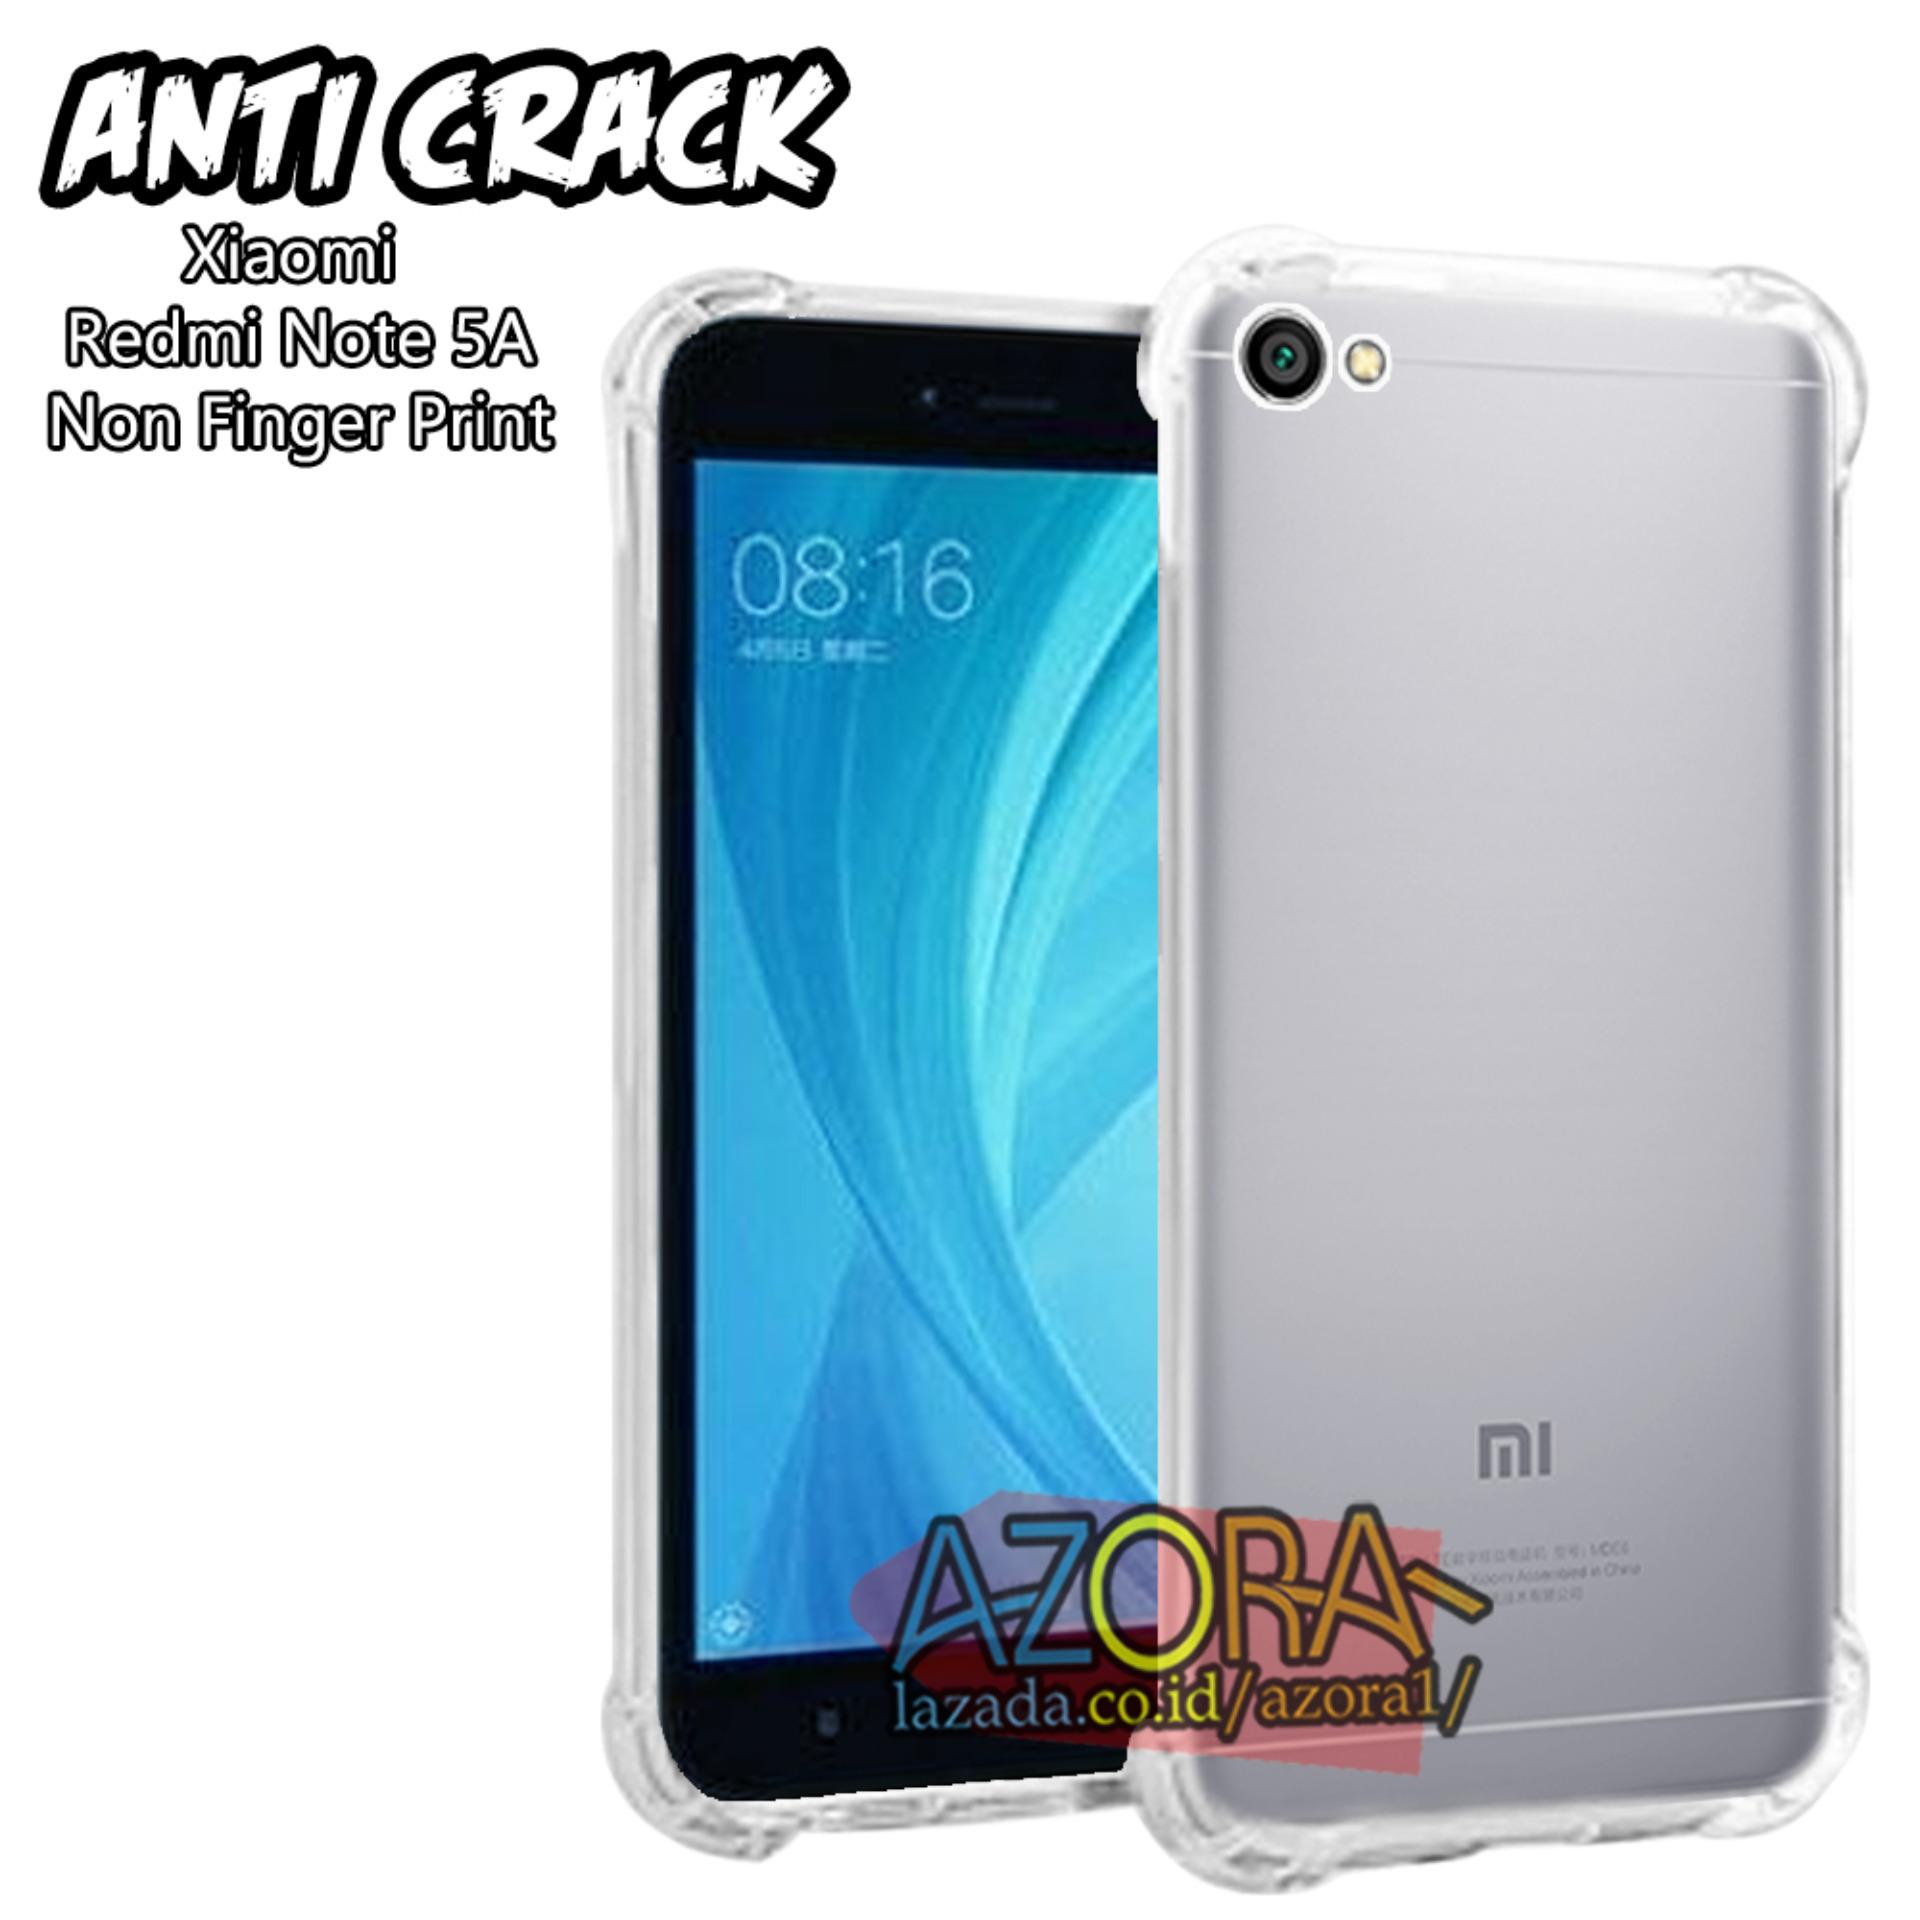 Case Anti Crack Xiaomi Redmi Note 5A Non Finger Print ( 5,5 Inch ) Ultra Thin Anti Shock Jelly Silikon Shockproof Softcase Azora - Bening XC1